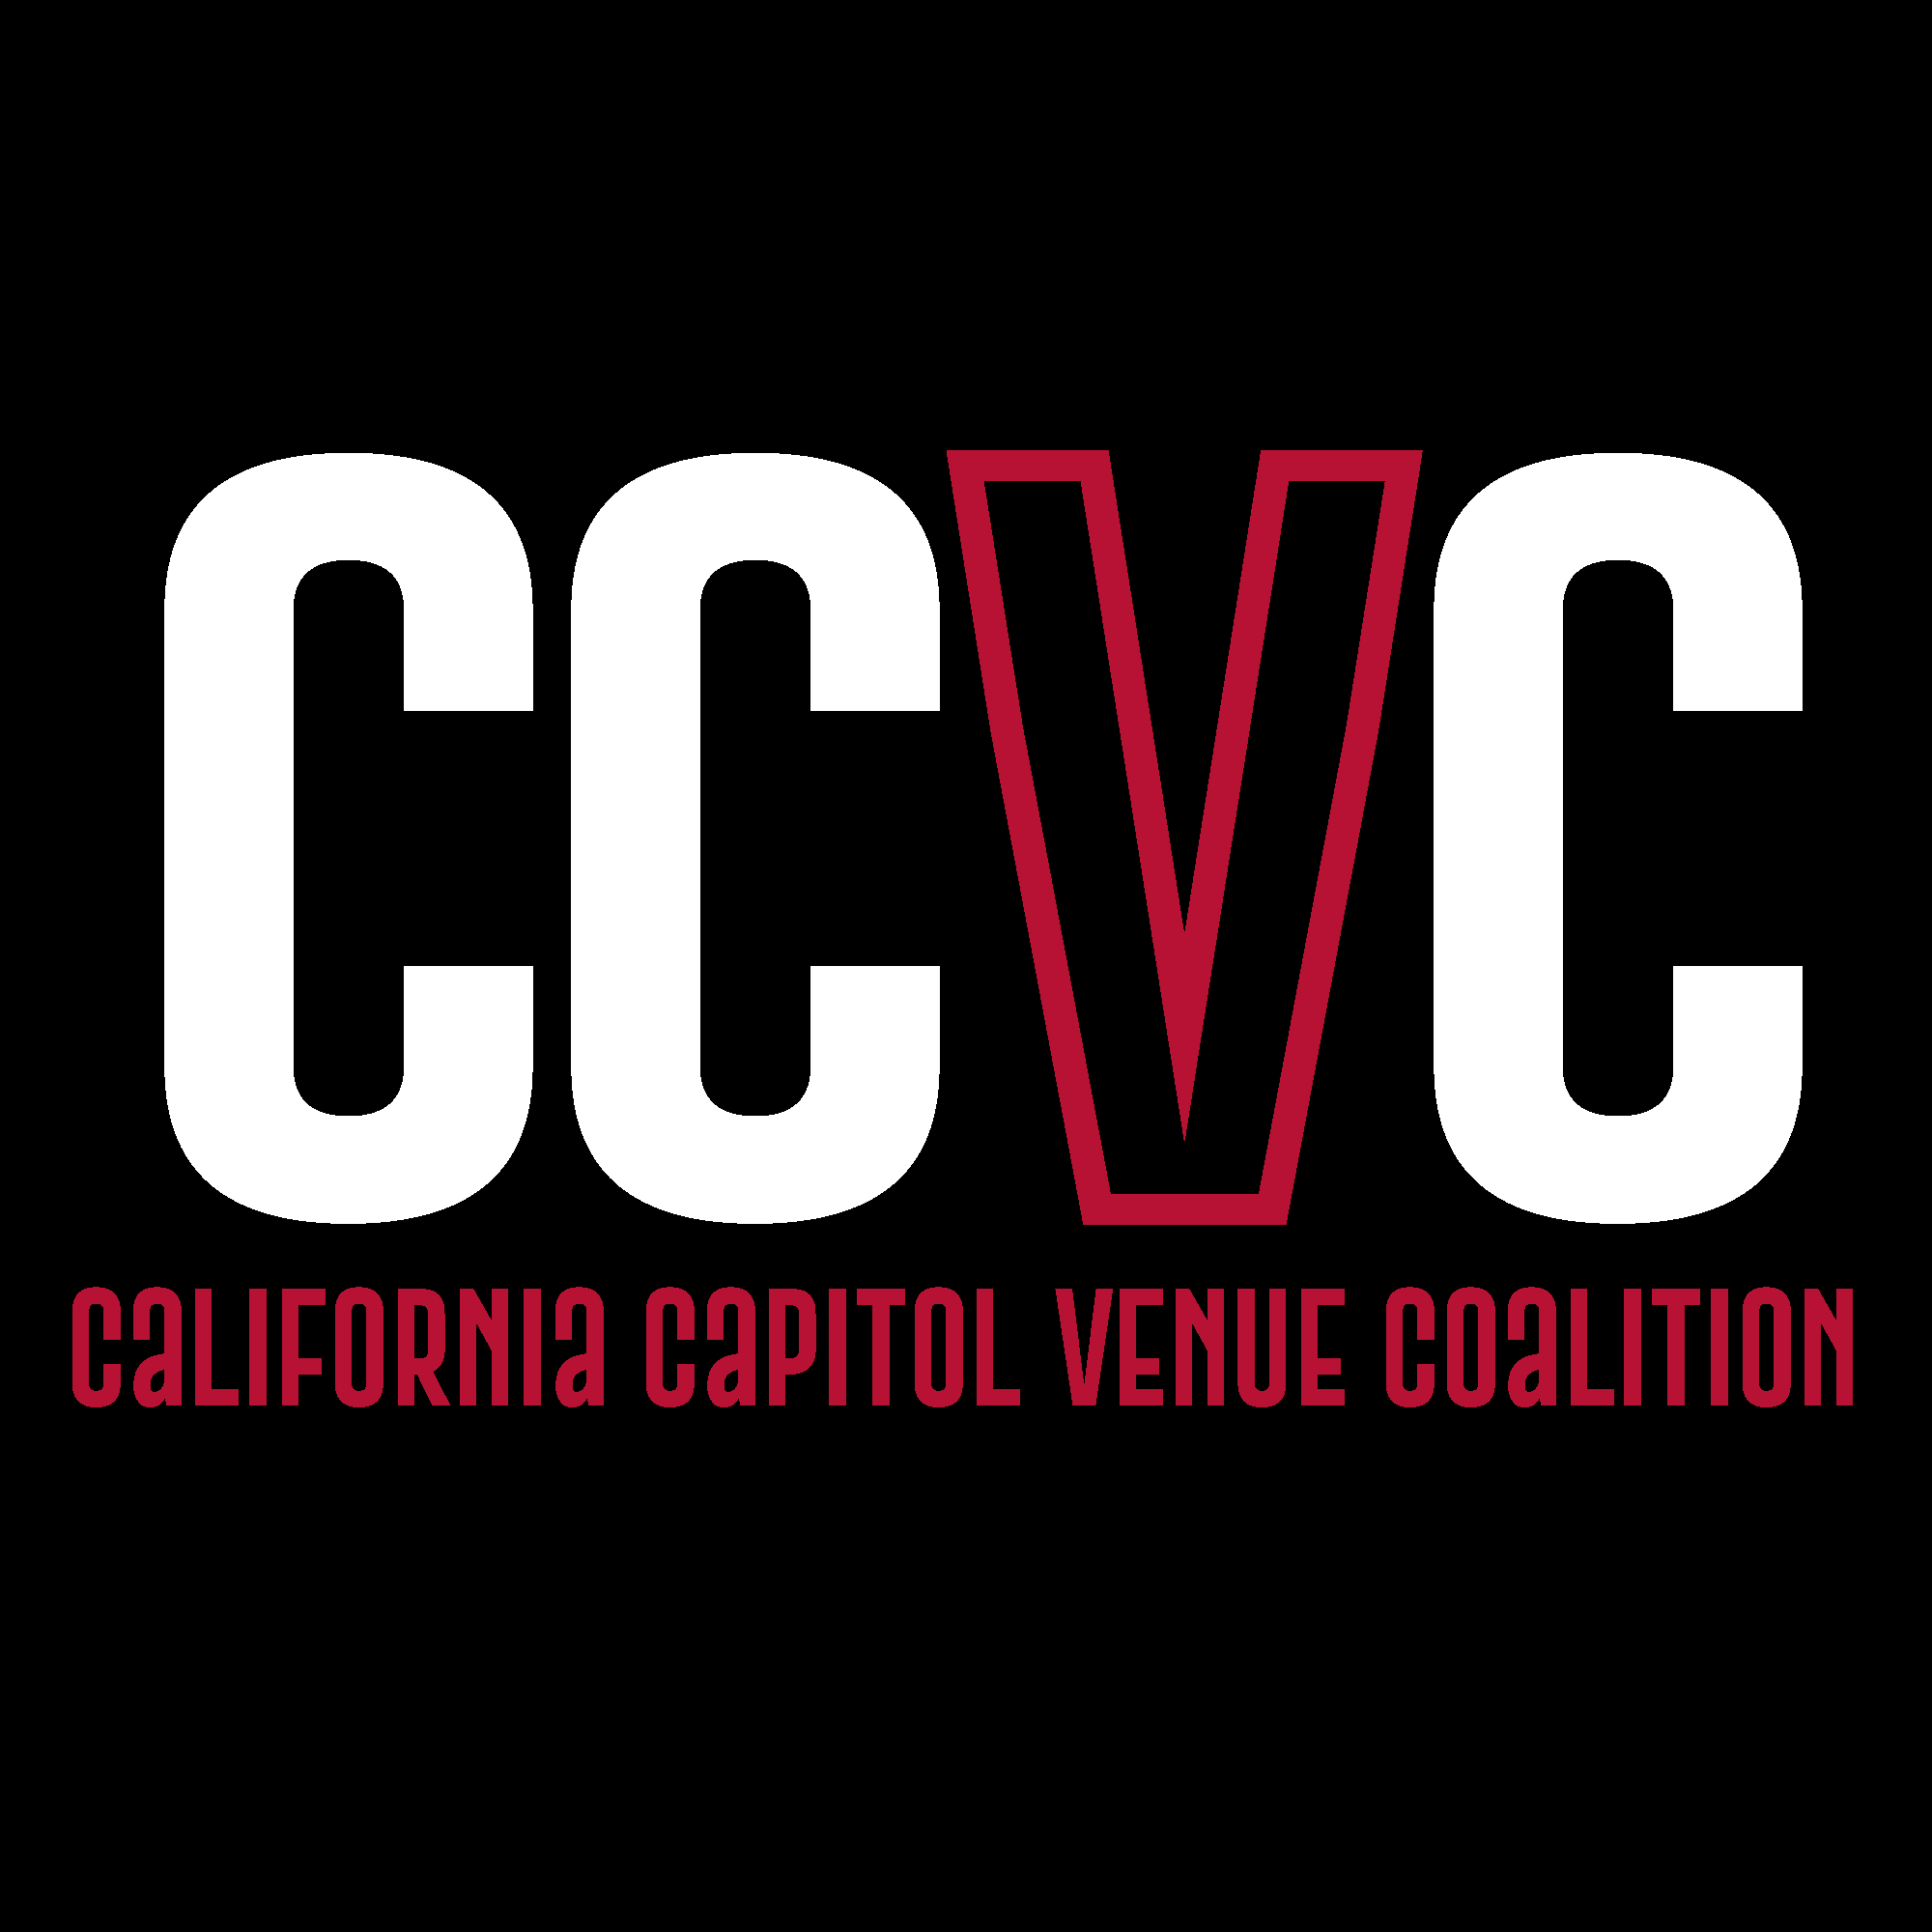 Crest Helps Found The California Capitol Venue Coalition